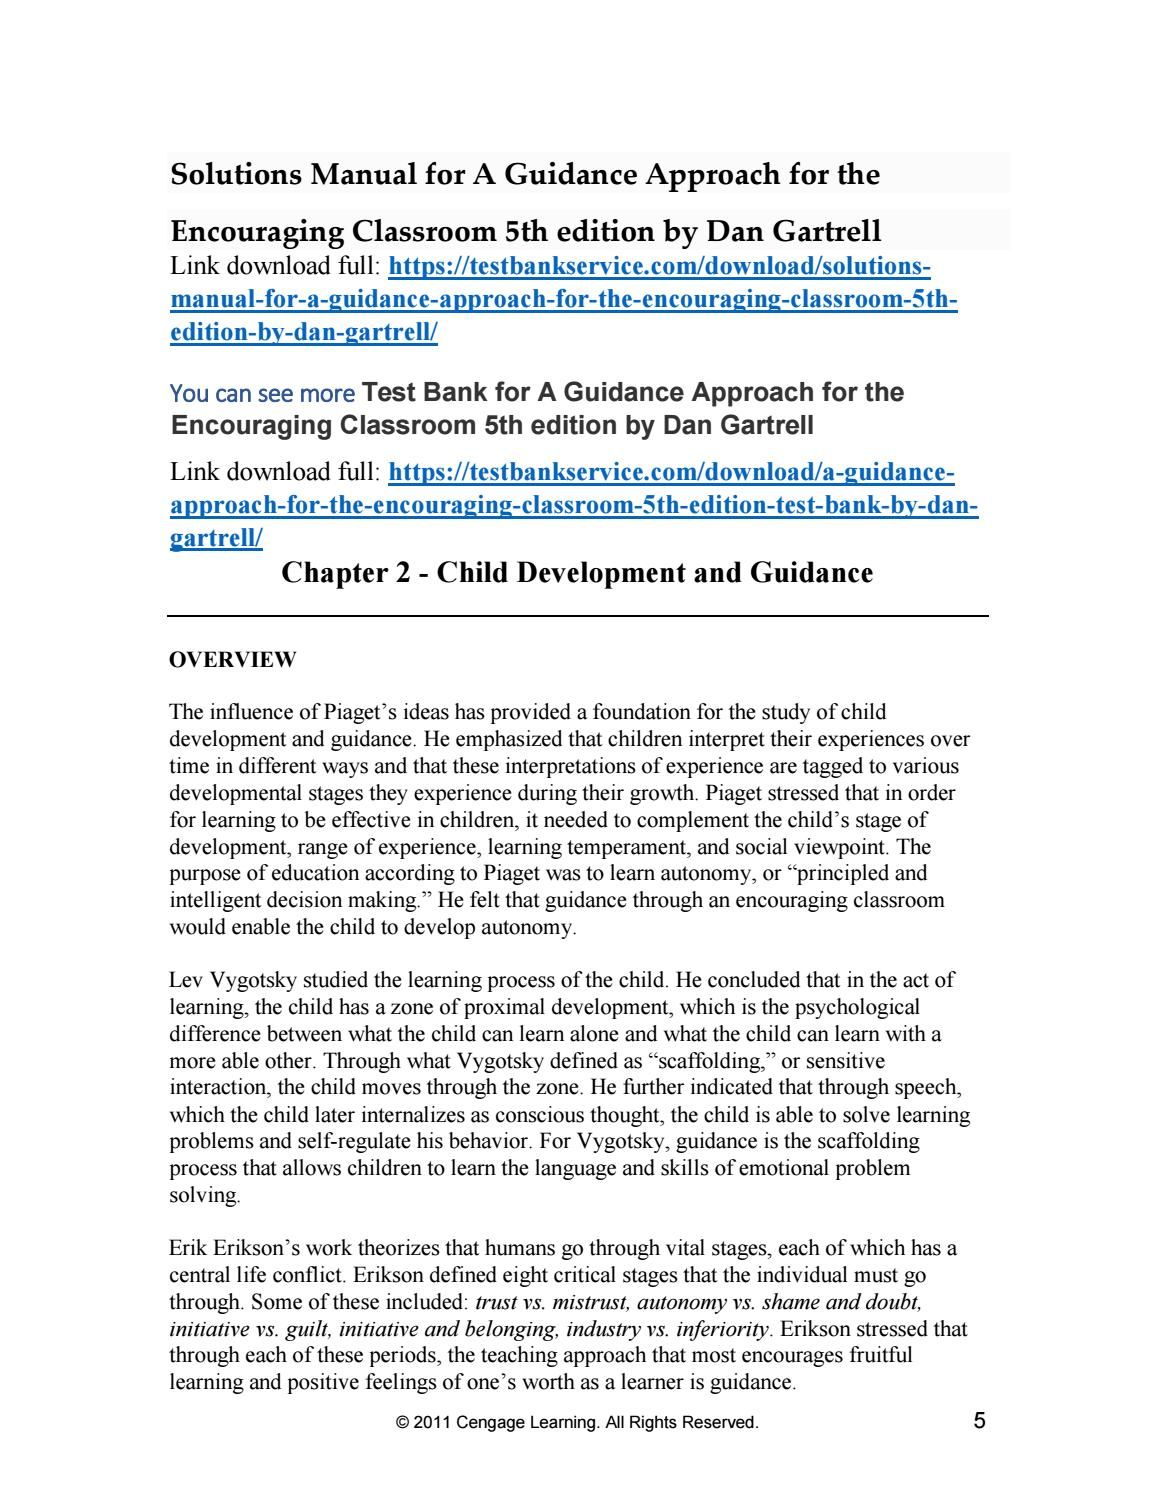 Solutions Manual for a Guidance Approach for the Encouraging Classroom 5th  Edition by Dan Gartrell